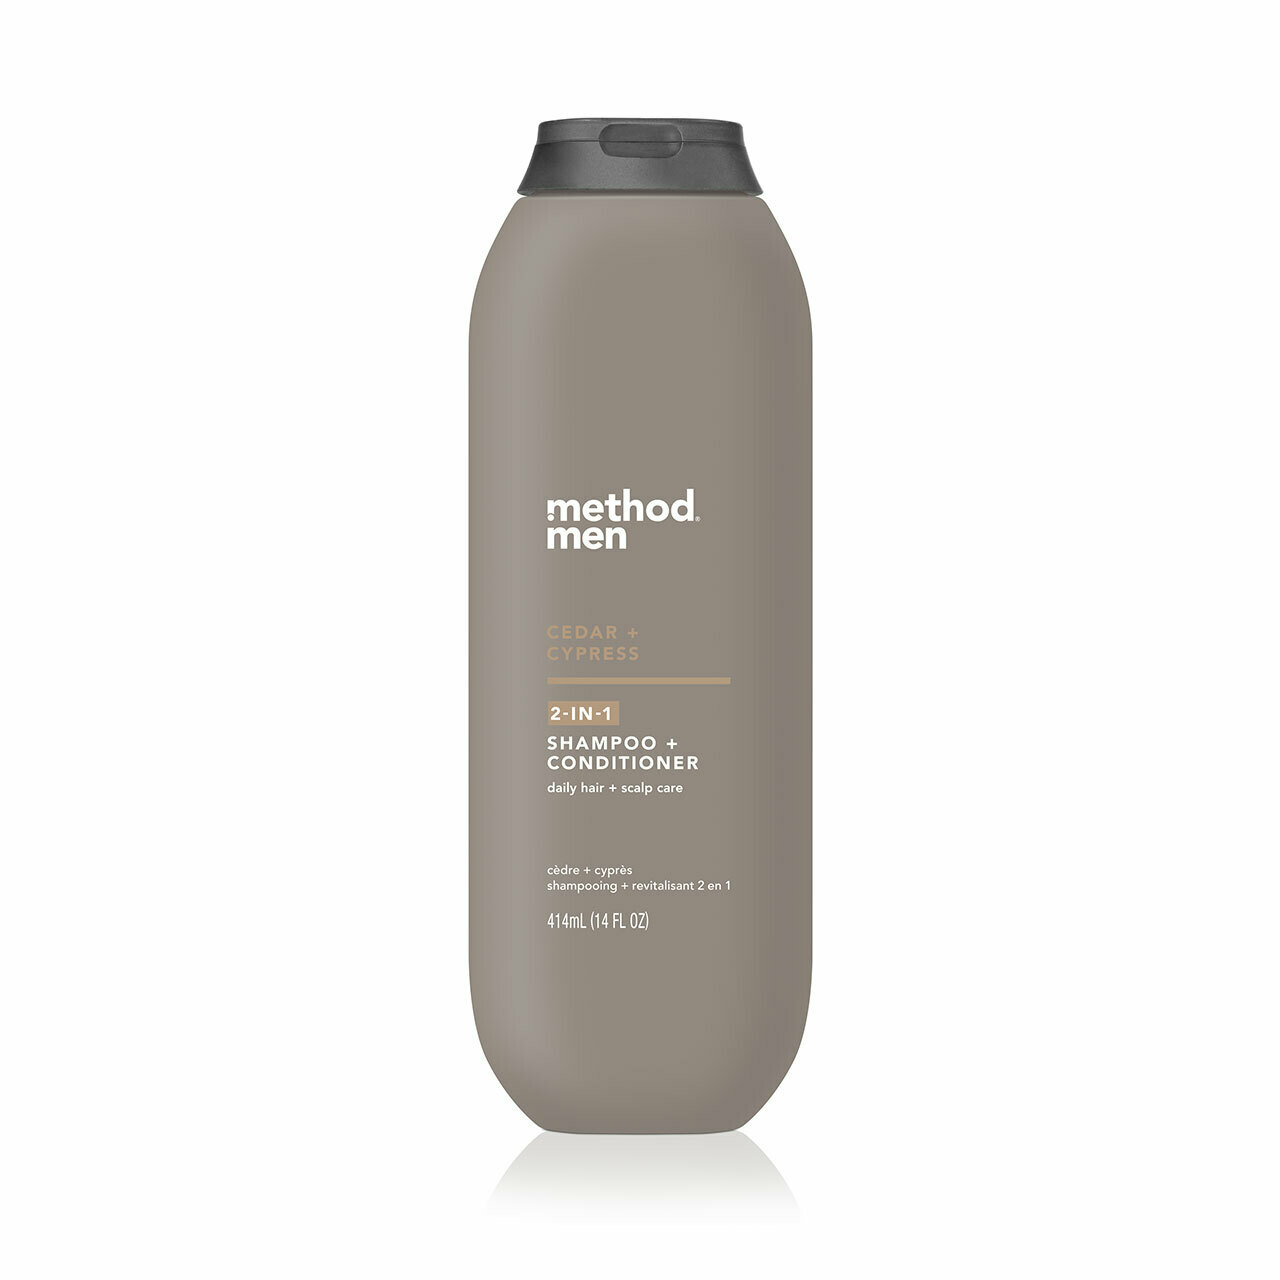 Method Men Cedar and Cypress 2 in 1 Shampoo and Conditioner